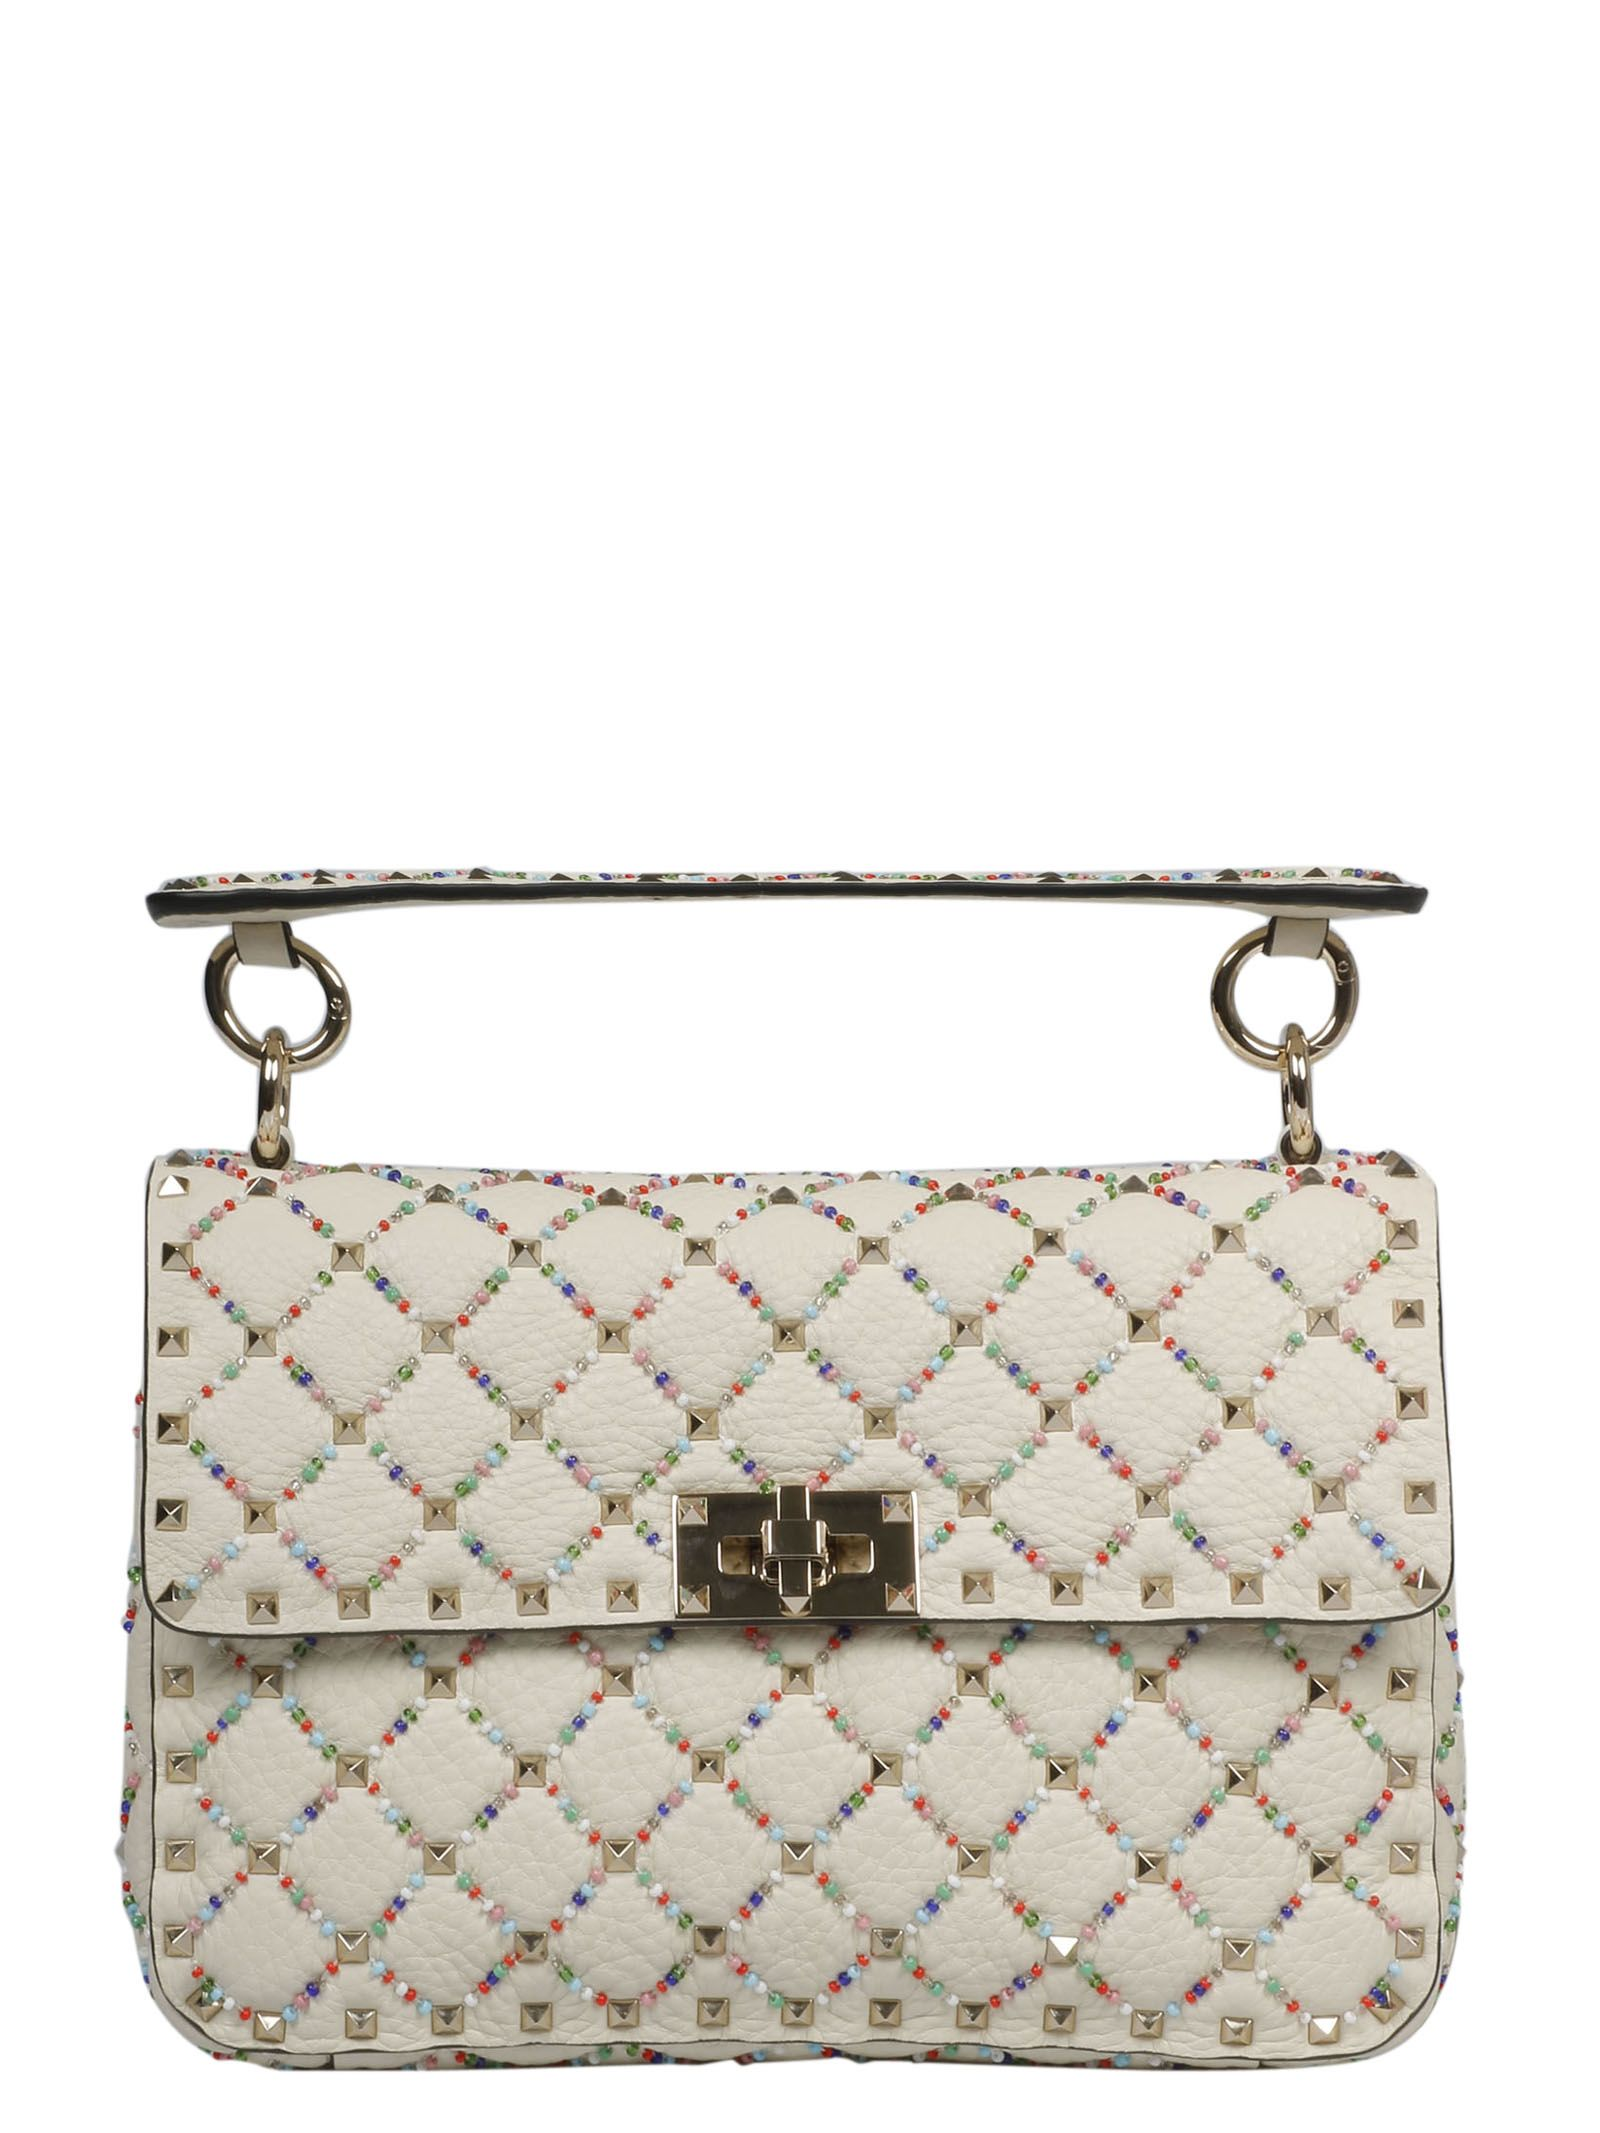 Valentino Garavani Medium Rhombus Beads Embroidery Shoulder Bag